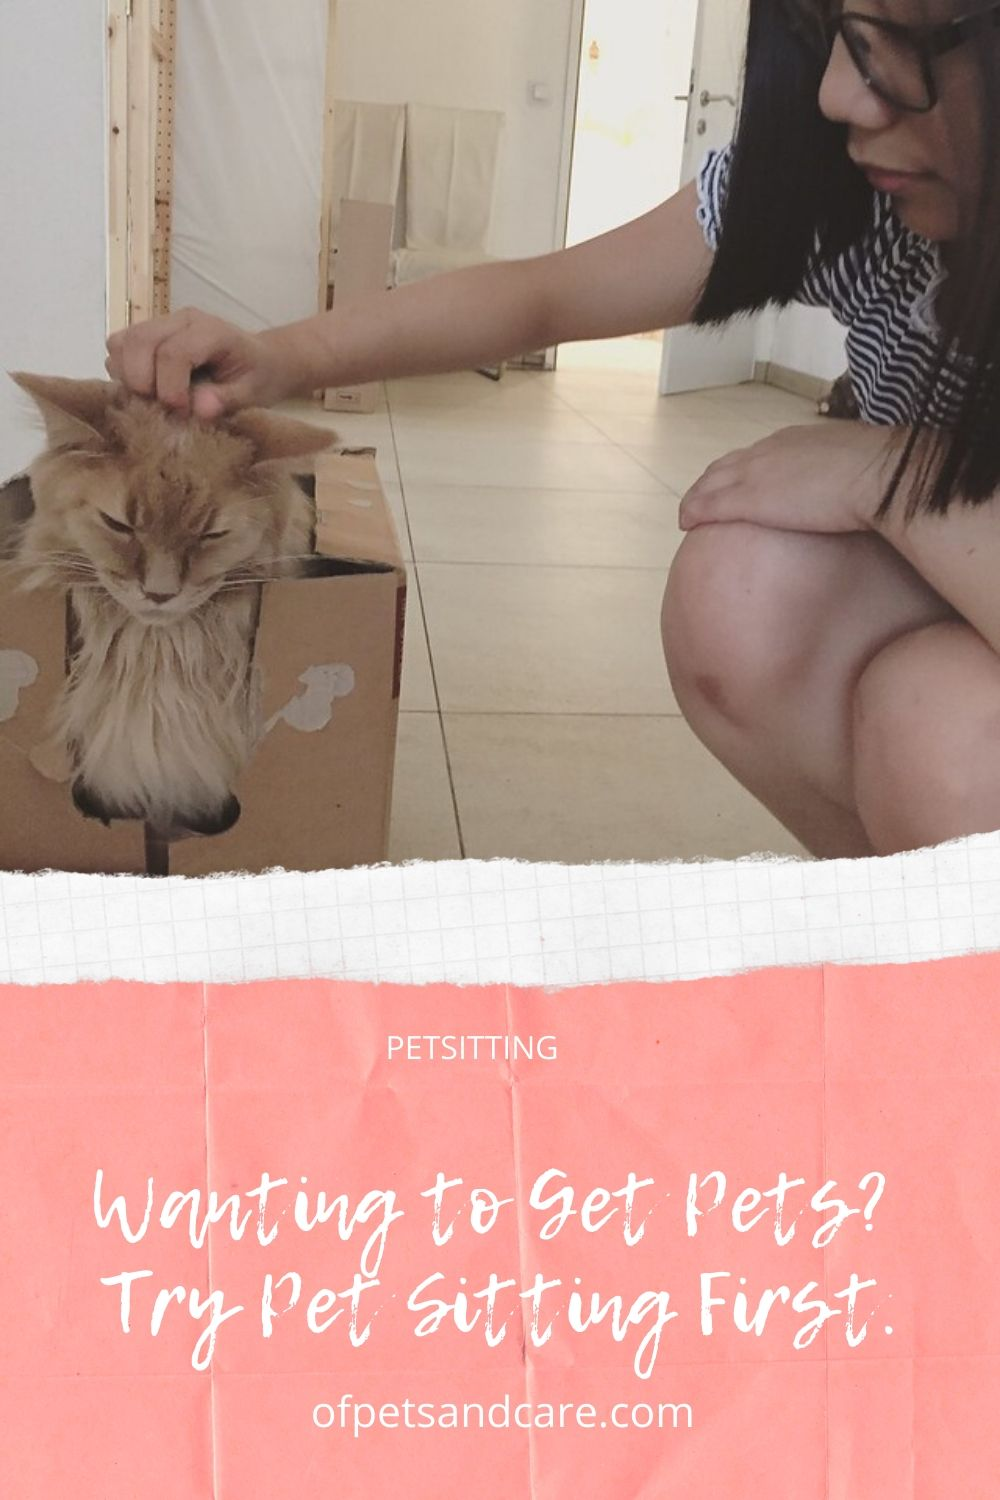 Wanting to Get Pets? Try Pet Sitting First.